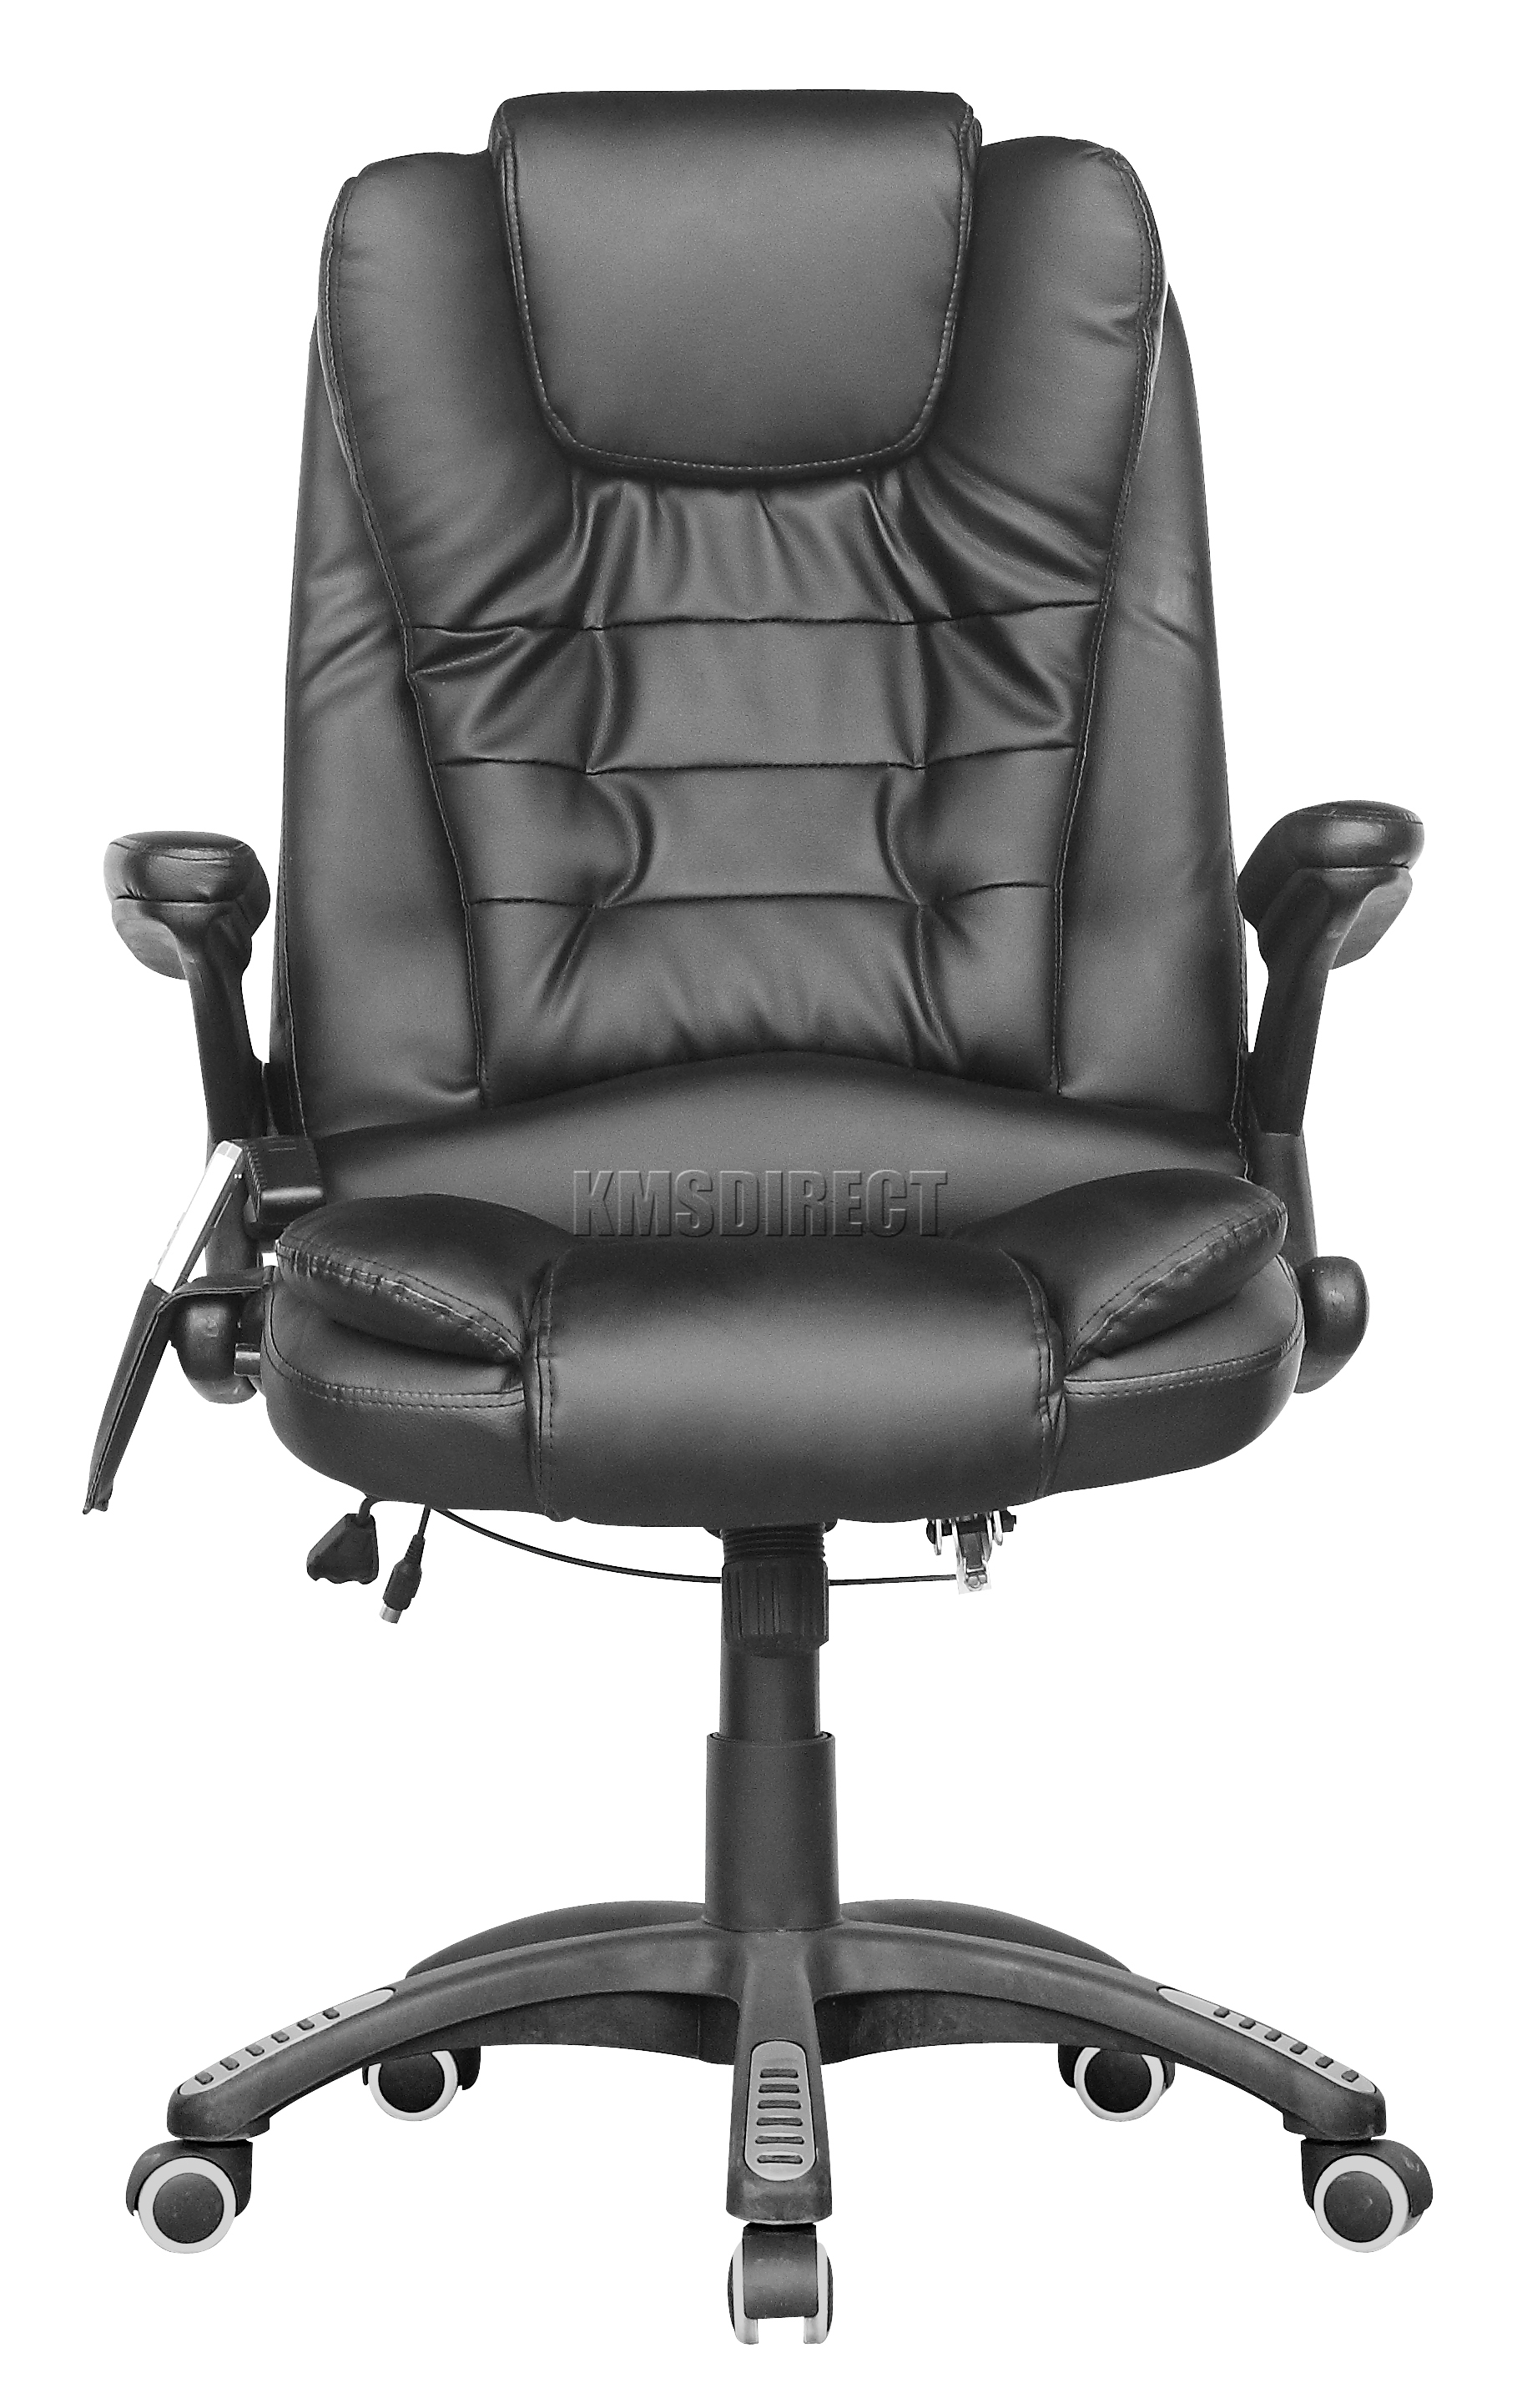 luxury office chairs uk hanging chair tauranga foxhunter black leather 6 point massage